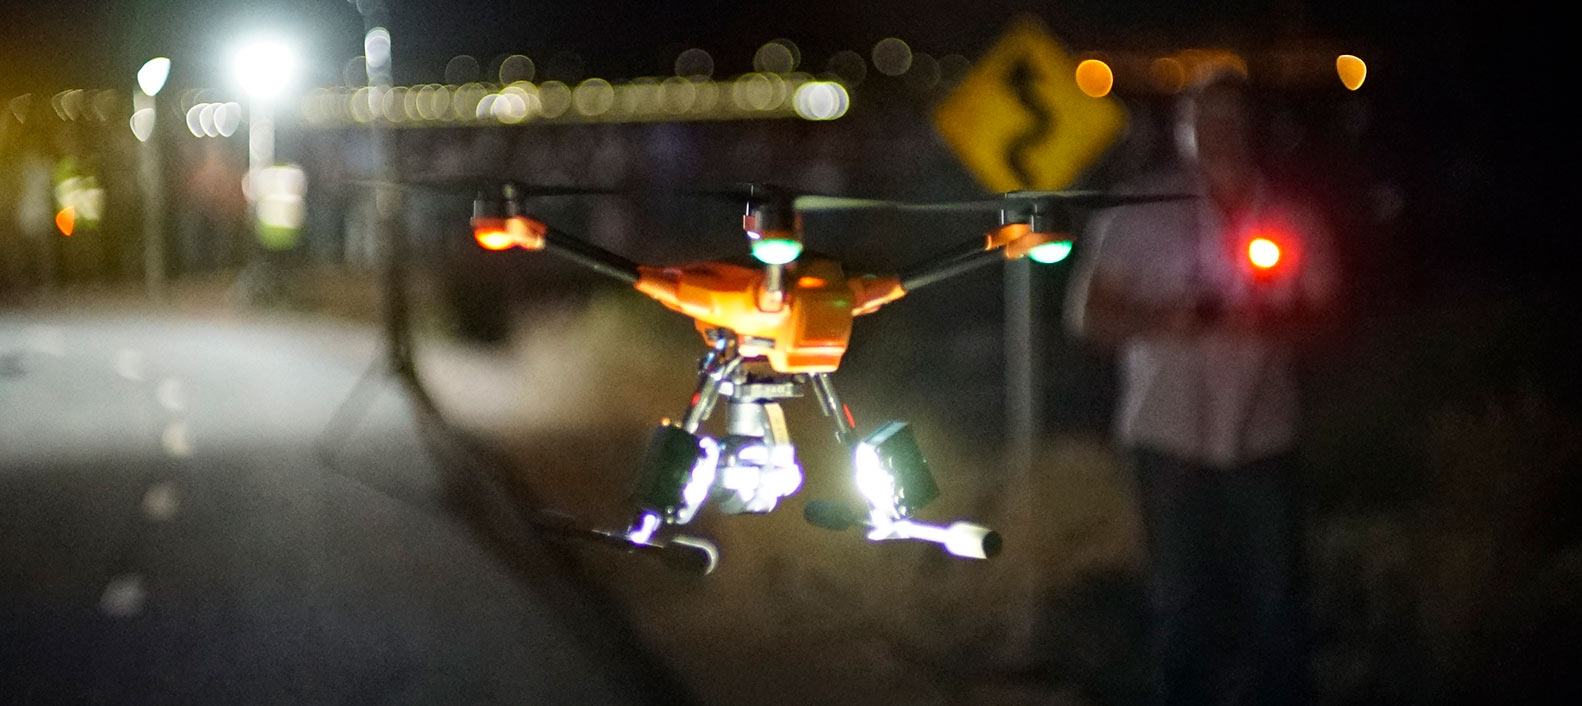 Public safety drone demonstration in crime scene at night